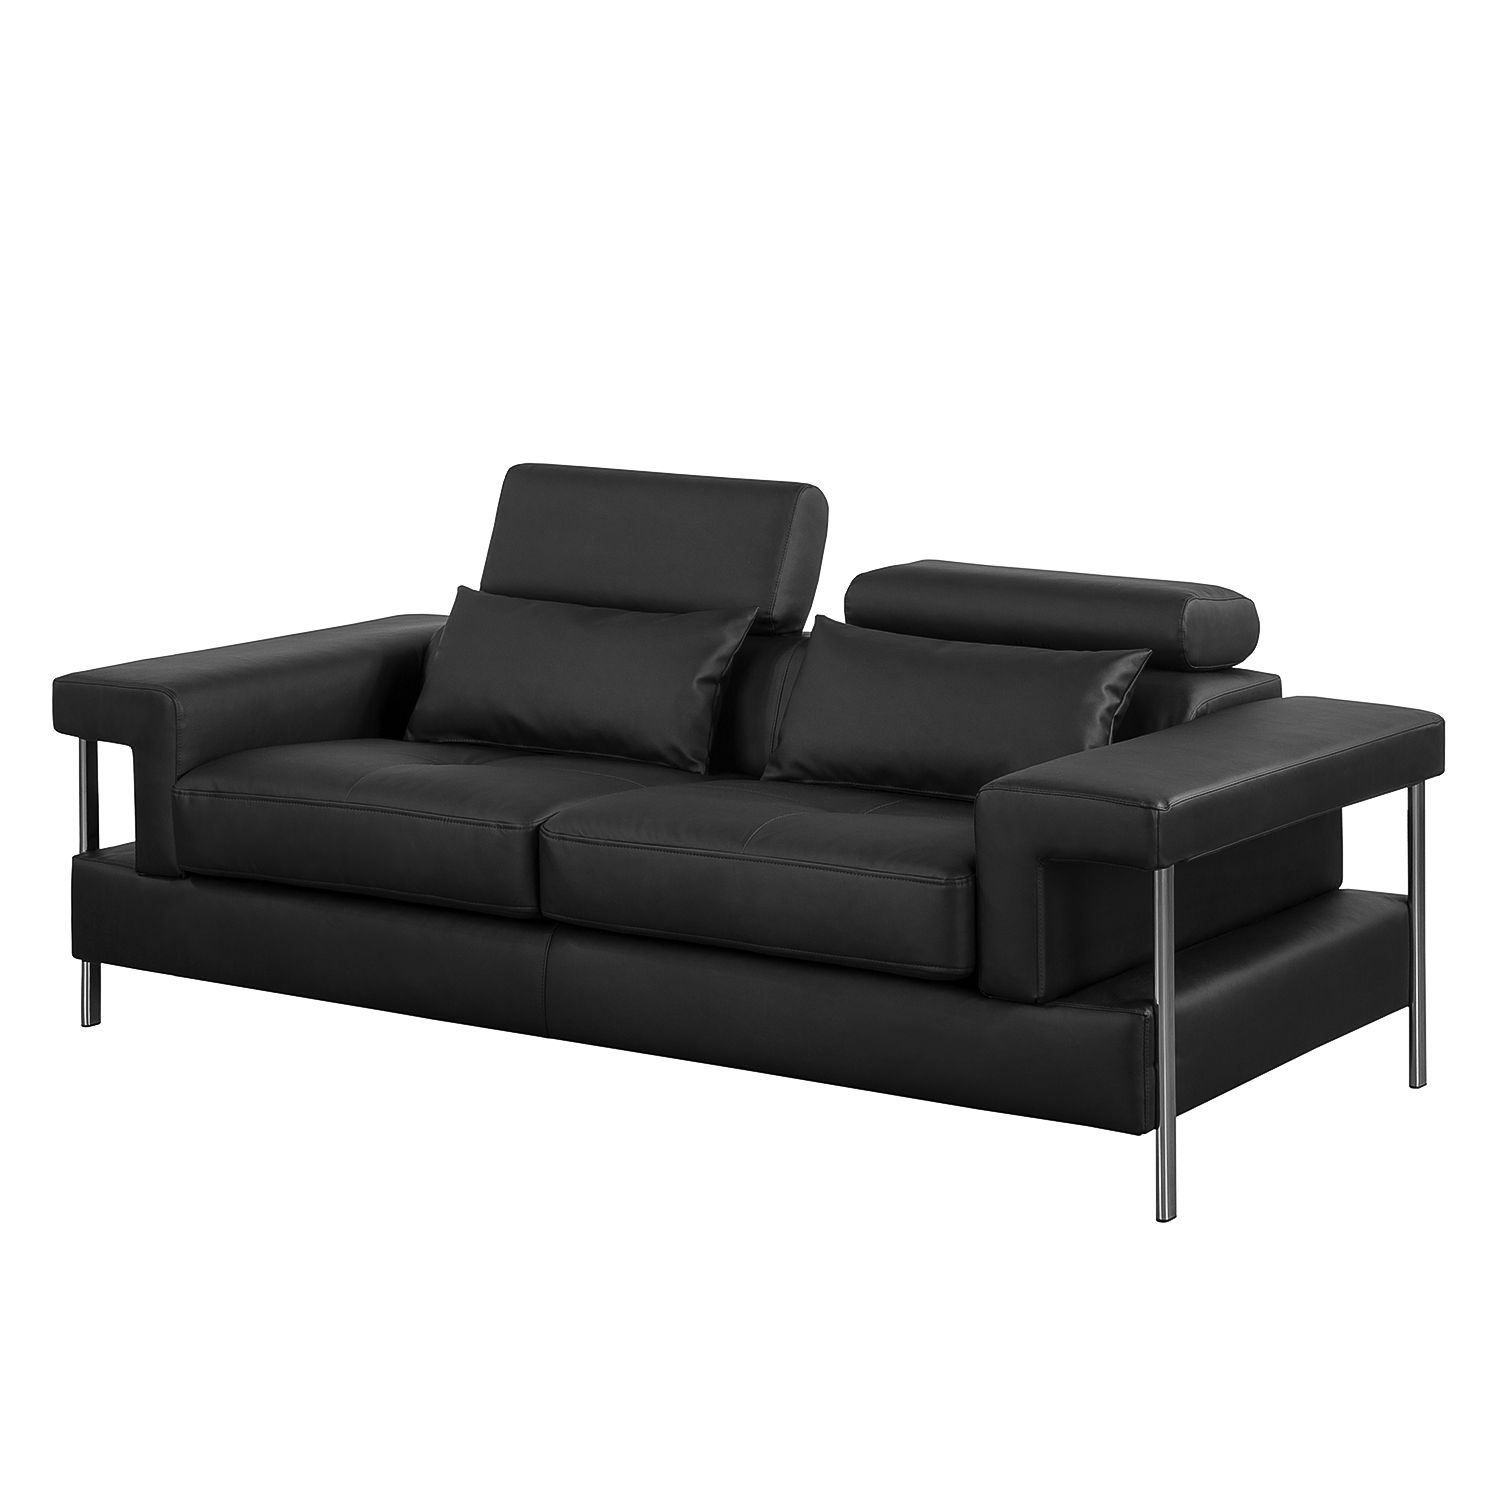 kunstleder couch kaufen stunning kunstleder with kunstleder couch kaufen kunstleder flicken. Black Bedroom Furniture Sets. Home Design Ideas